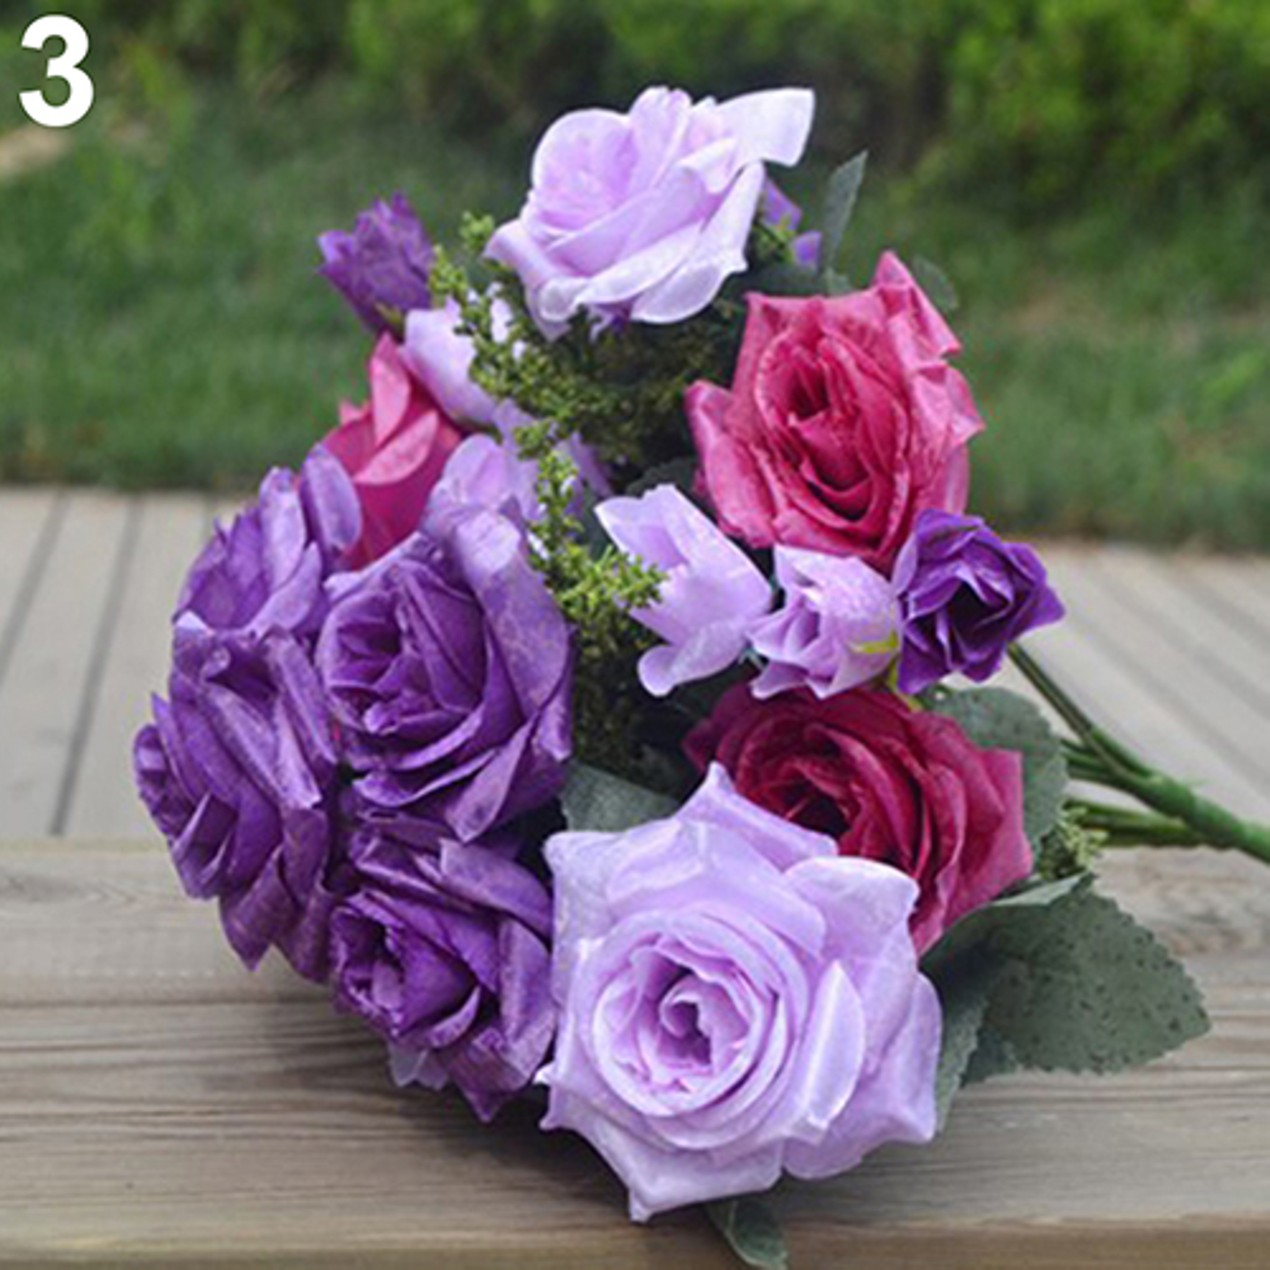 1 Piece 13 Heads Flower Rolled Rose Artificial Cloth Rose Bouquet